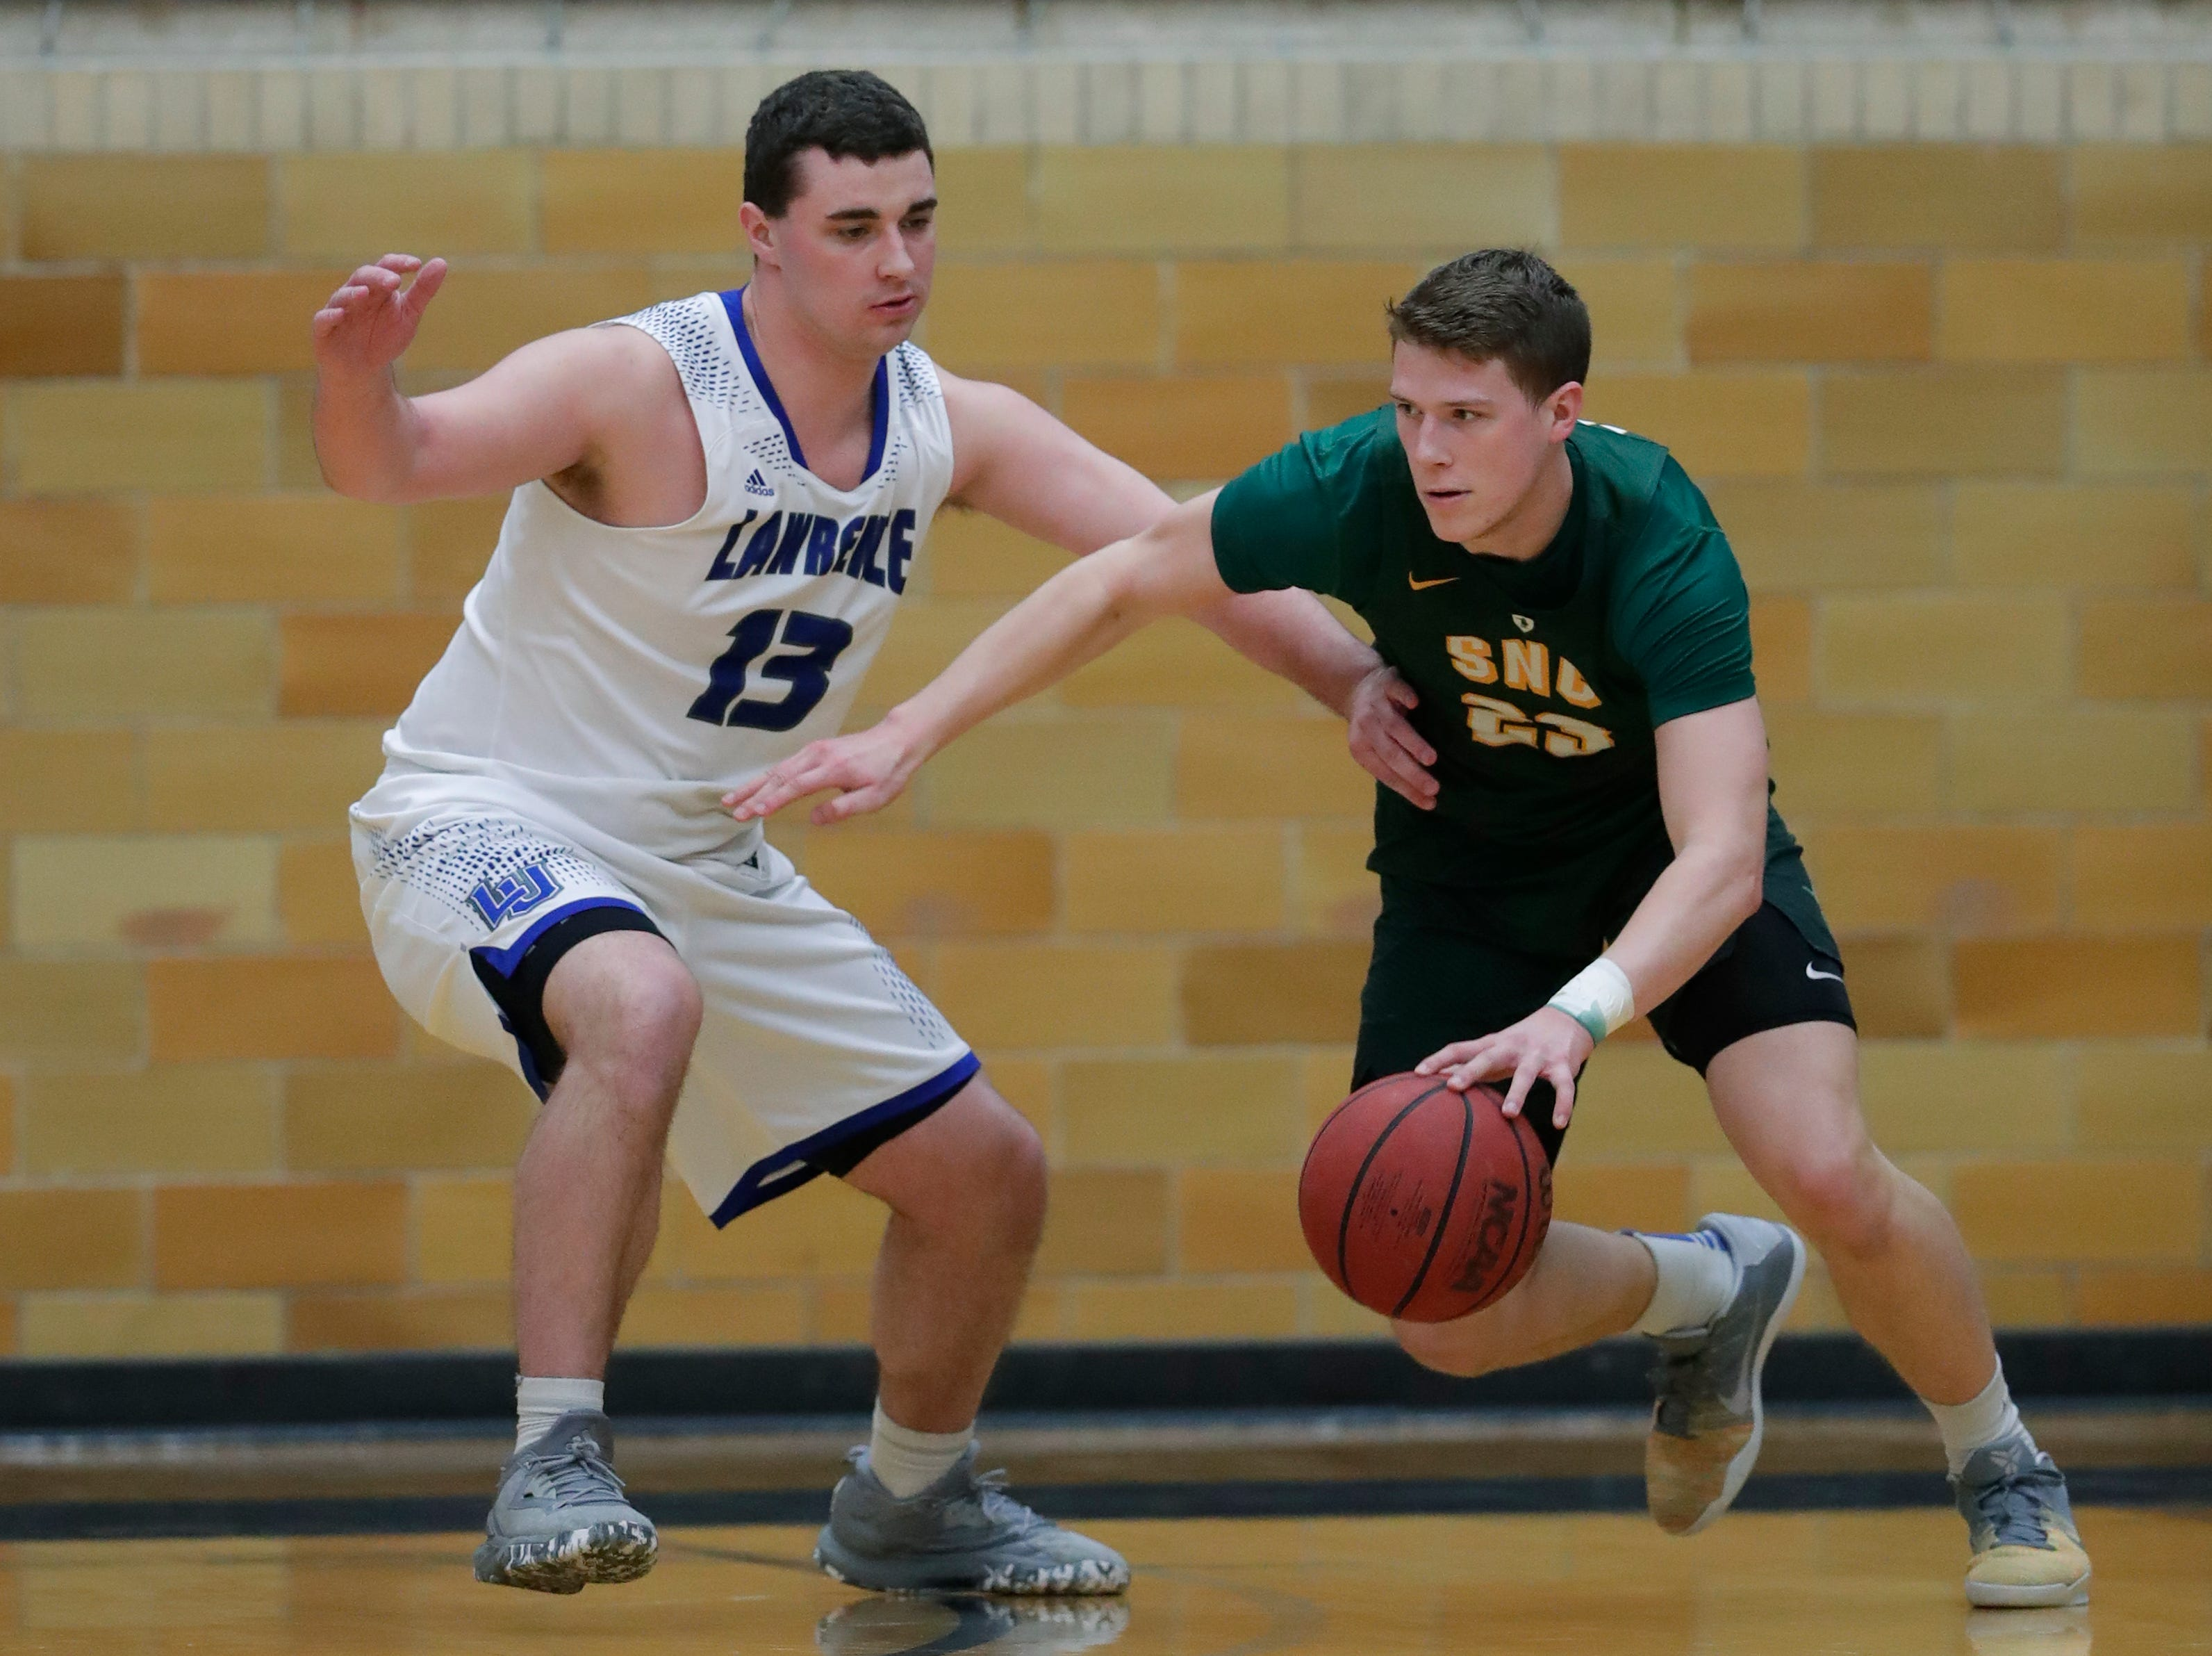 Lawrence University's Tyler Klug (13) defends against St. Norbert College's Drew Yetka (23) during their men's basketball game Thursday, January 31, 2019, at Alexander Gymnasium in Appleton, Wis. 